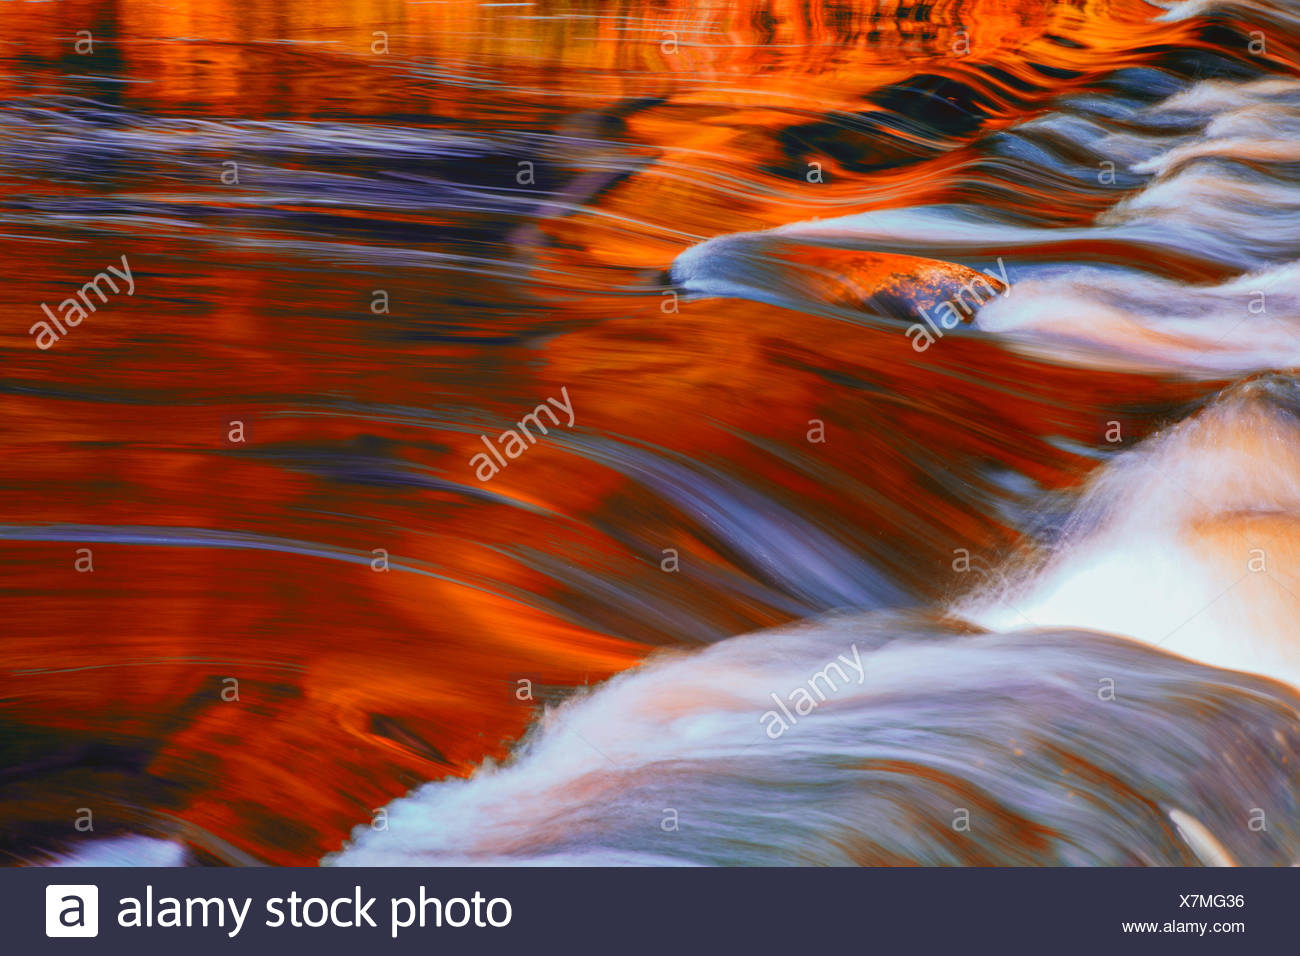 Mersey River reflections in autumn transformed into red via digital filter for a more interpretive effect at Kejimkujik National Park - Stock Image